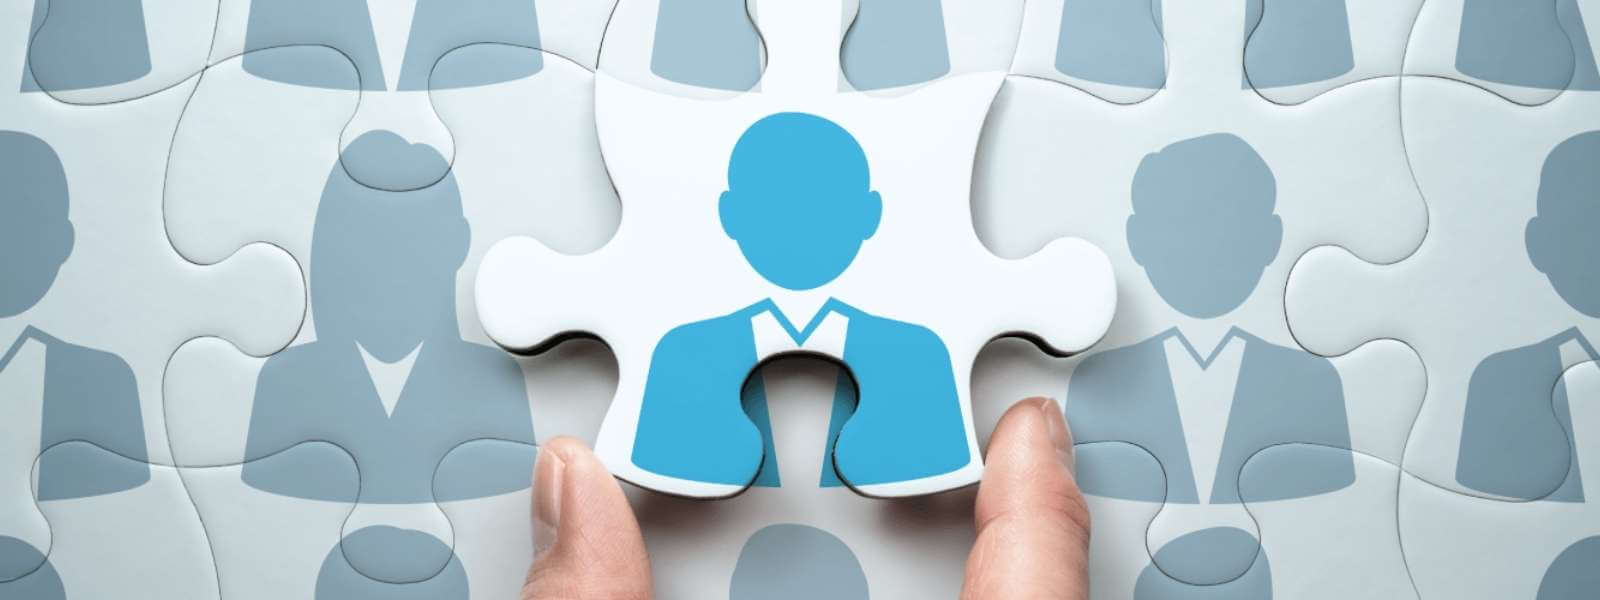 Choosing a business phone system blog image depicted with a puzzle piece being put into place connecting team members